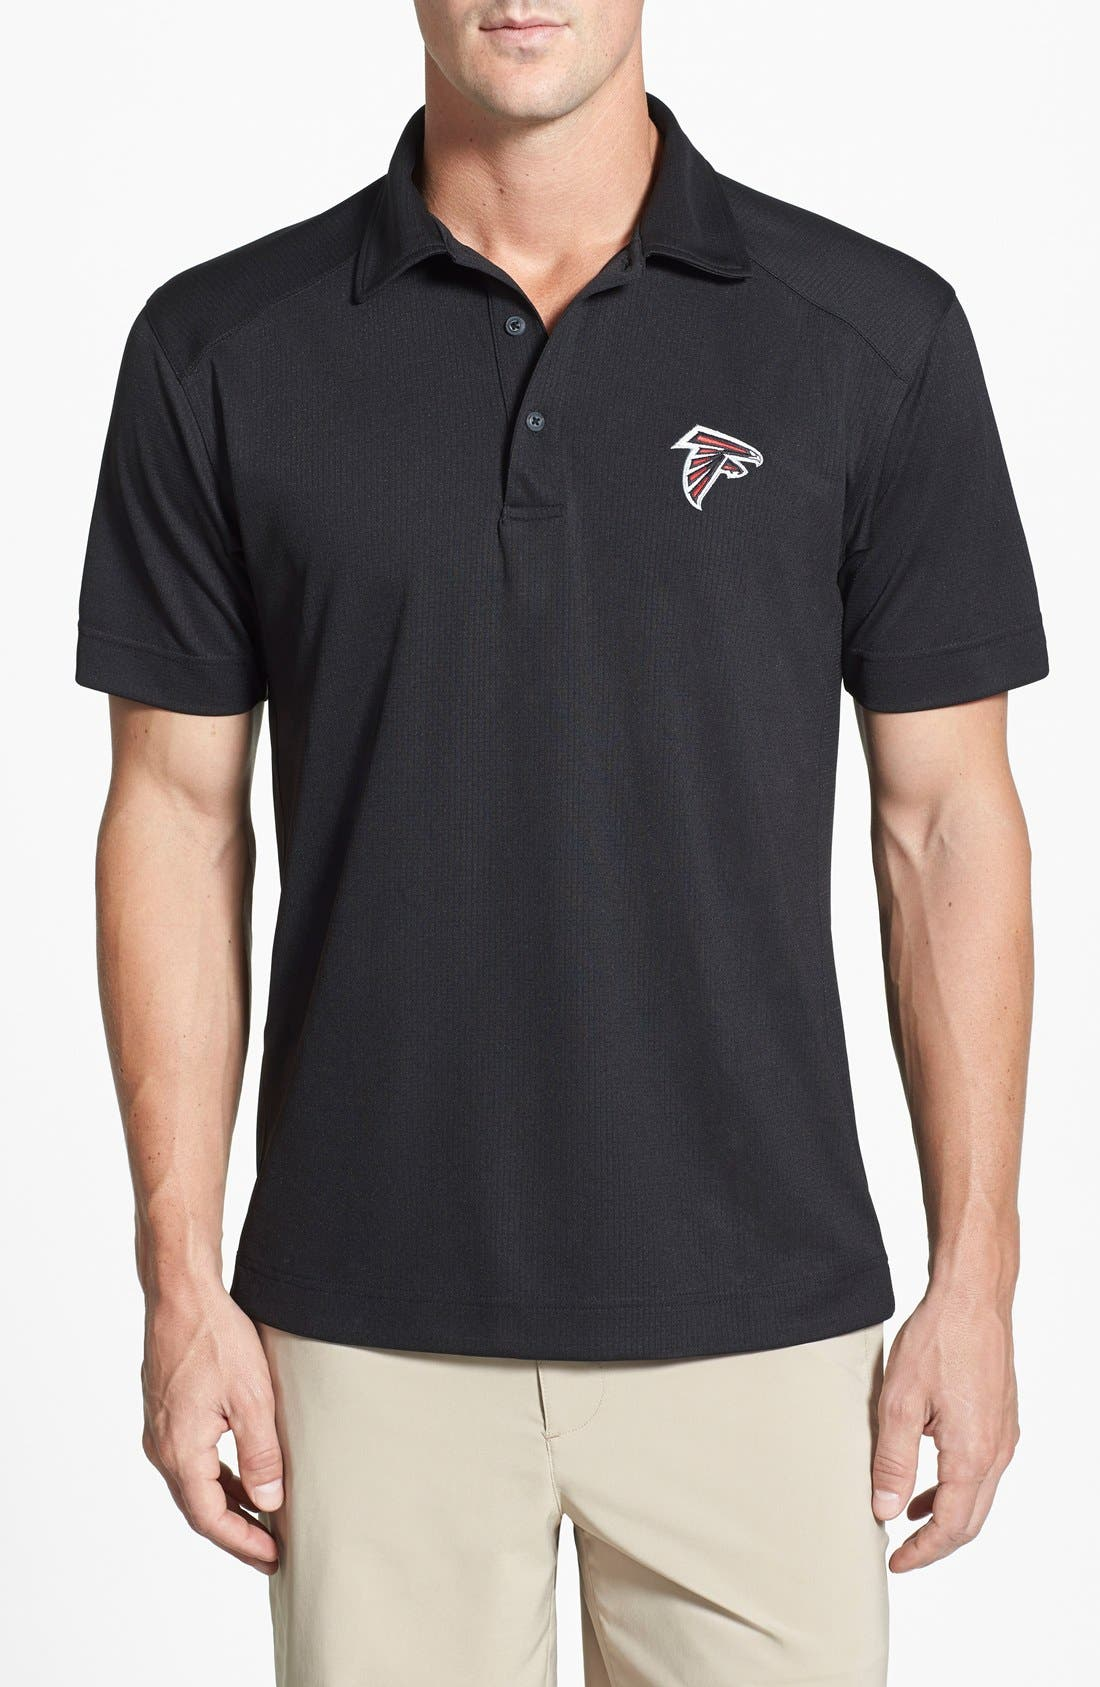 Cutter & Buck Atlanta Falcons - Genre DryTec Moisture Wicking Polo